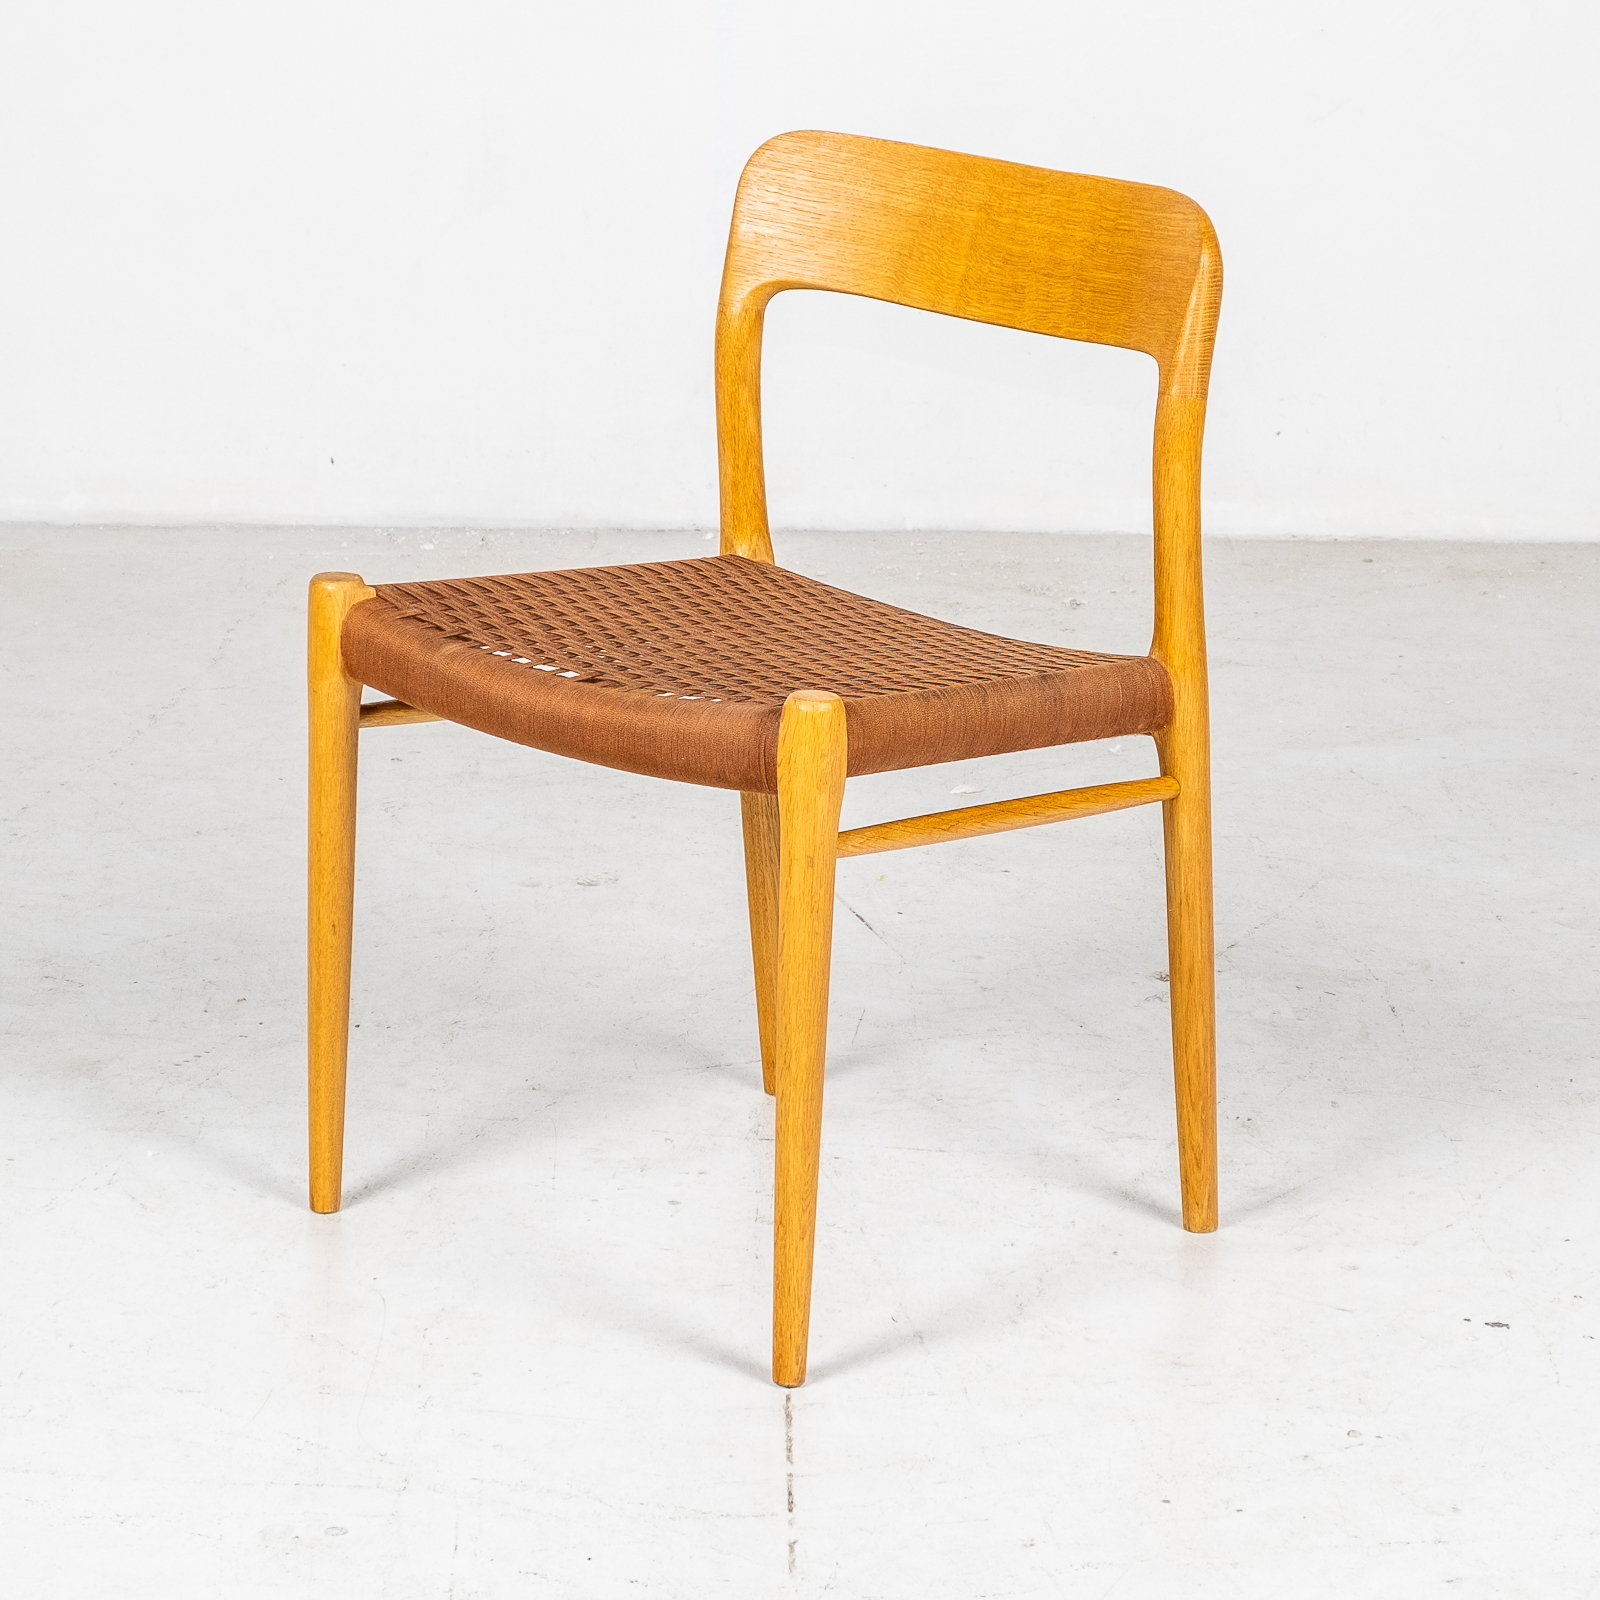 Set Of 6 Model 75 Dining Chairs By Neils Moller For J. L. Moller Mobelfabrik In Oak With Wool Cord, 1960s, Denmark8